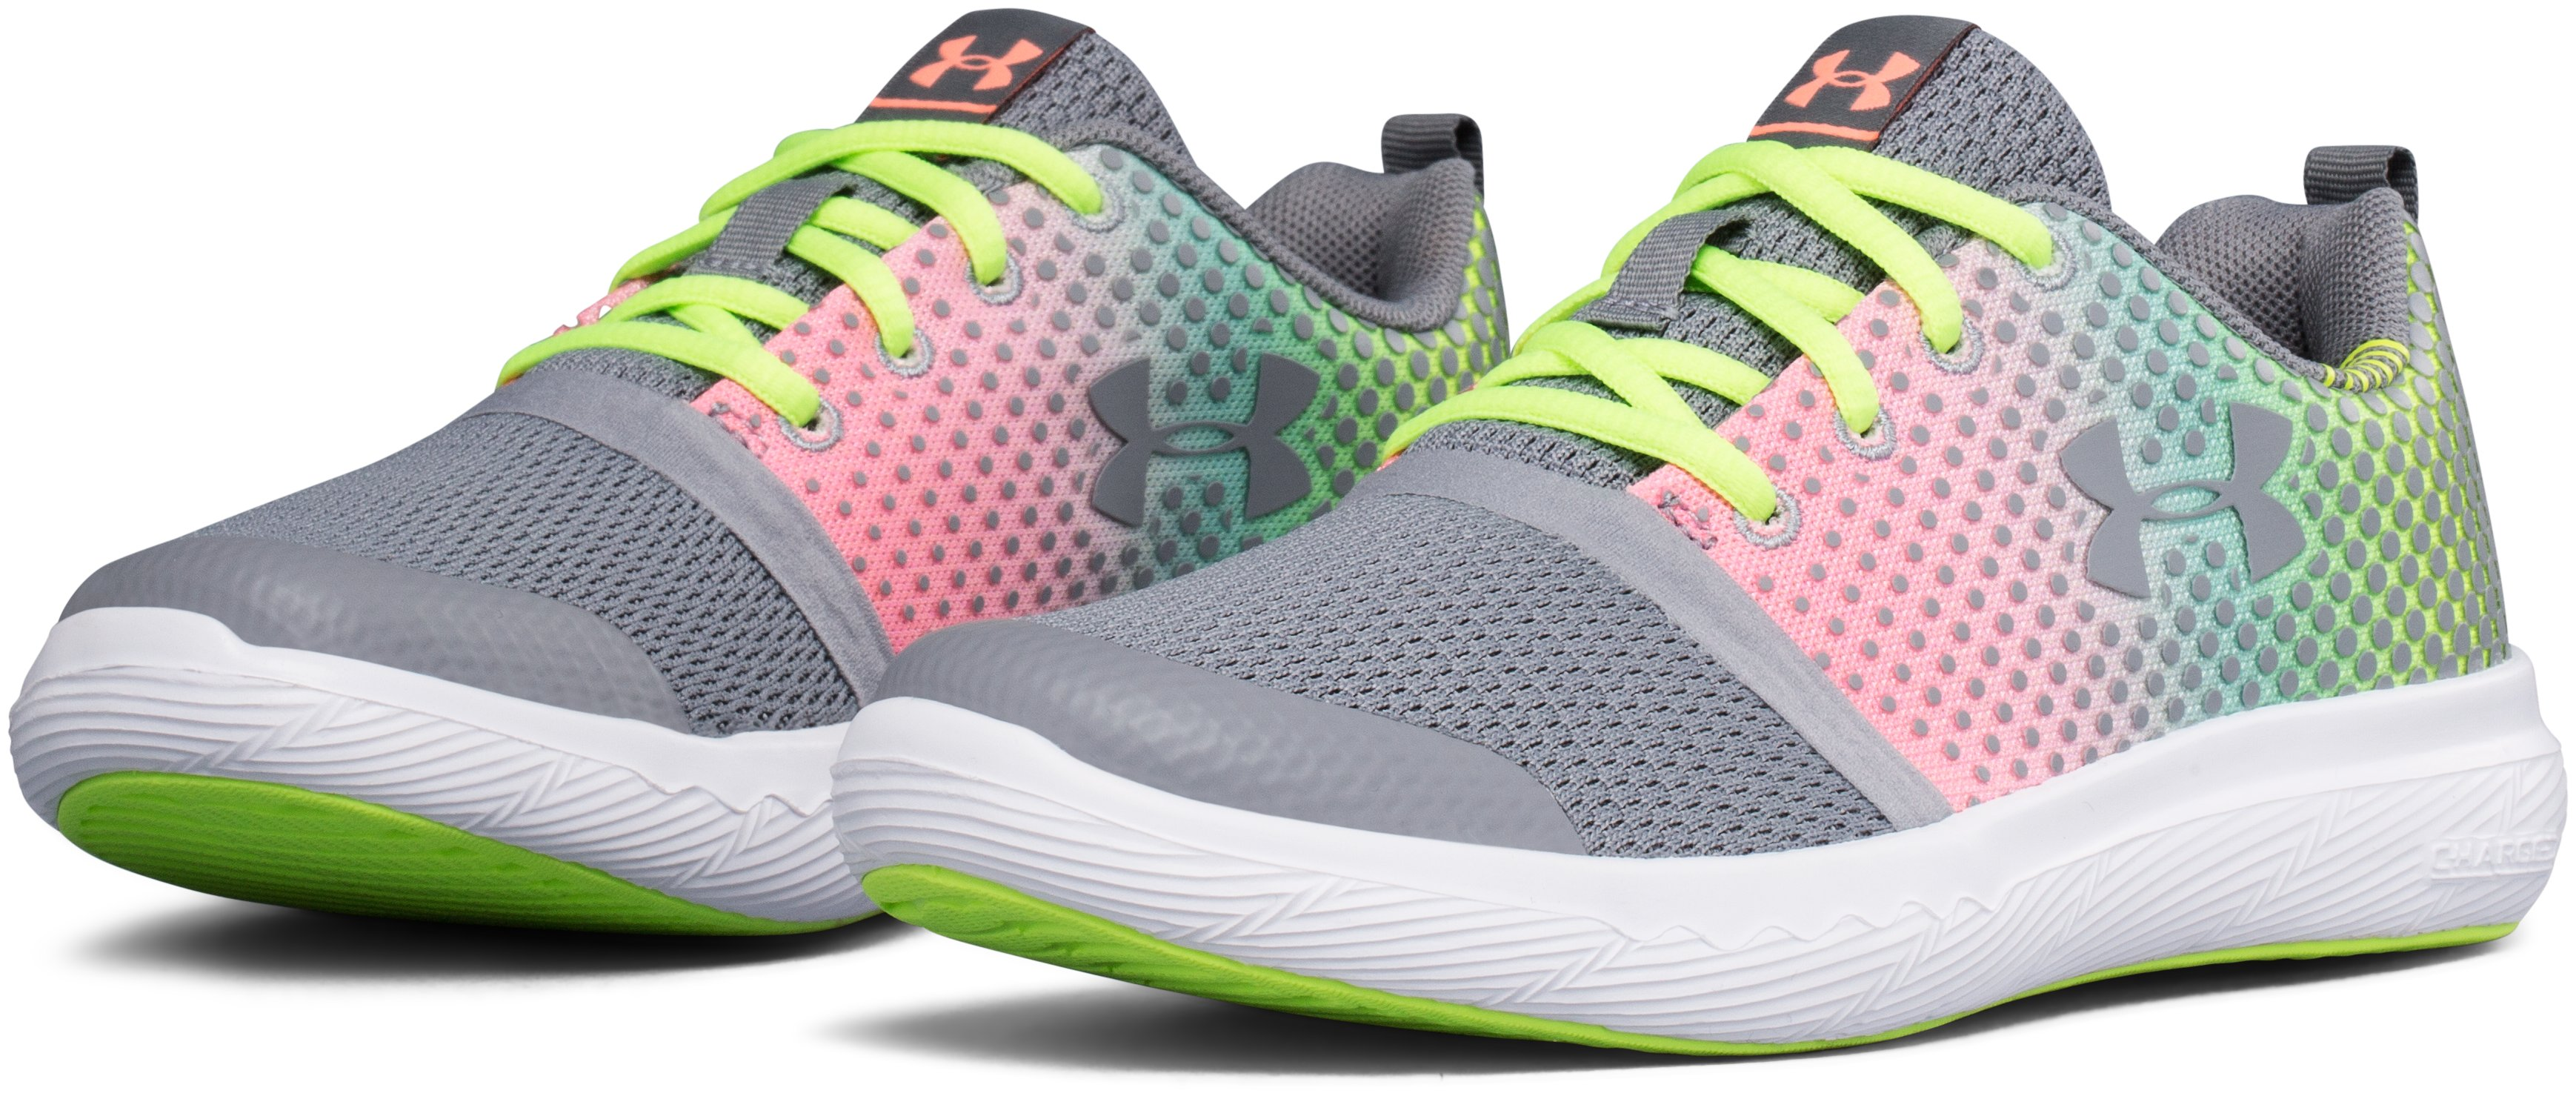 Girls' Pre-School UA Charged 24/7 Prism Running Shoes, Steel, undefined